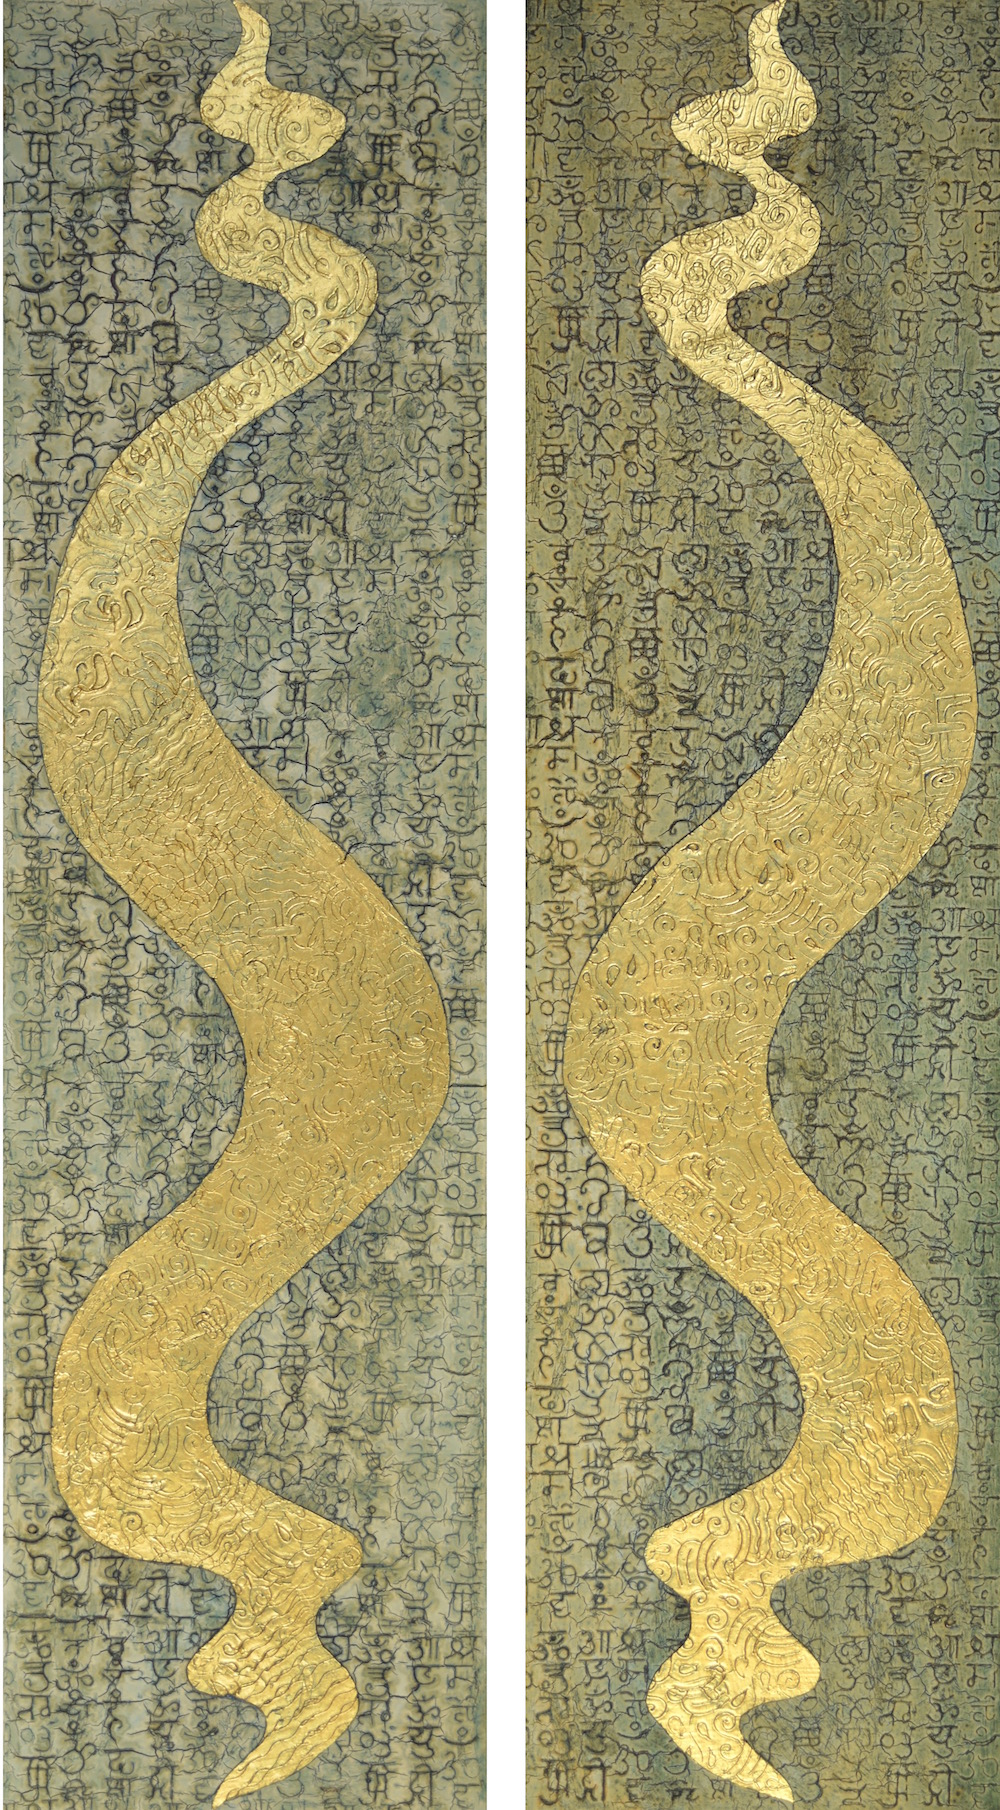 "Ahead of the Curve 1 & 2 @ 16"" W x 60"" H x 2"" D Acrylic, oil & 23K gold leaf on archival board  The understory of these pieces are in the ancient language of Sanskrit and each one is a blessing. The 23K gold shapes are inspired by the Chofa (sky tassel), the Thai architectural ornament that adorns the roof tops of temples and palaces in most SE Asian countries. The chofa represents the mythical half bird, half man who is the vehicle of the Hindu God Vishnu.  I learned my first Sanskrit years ago on my first visit to Bali, over dinner - the best way to begin anything."